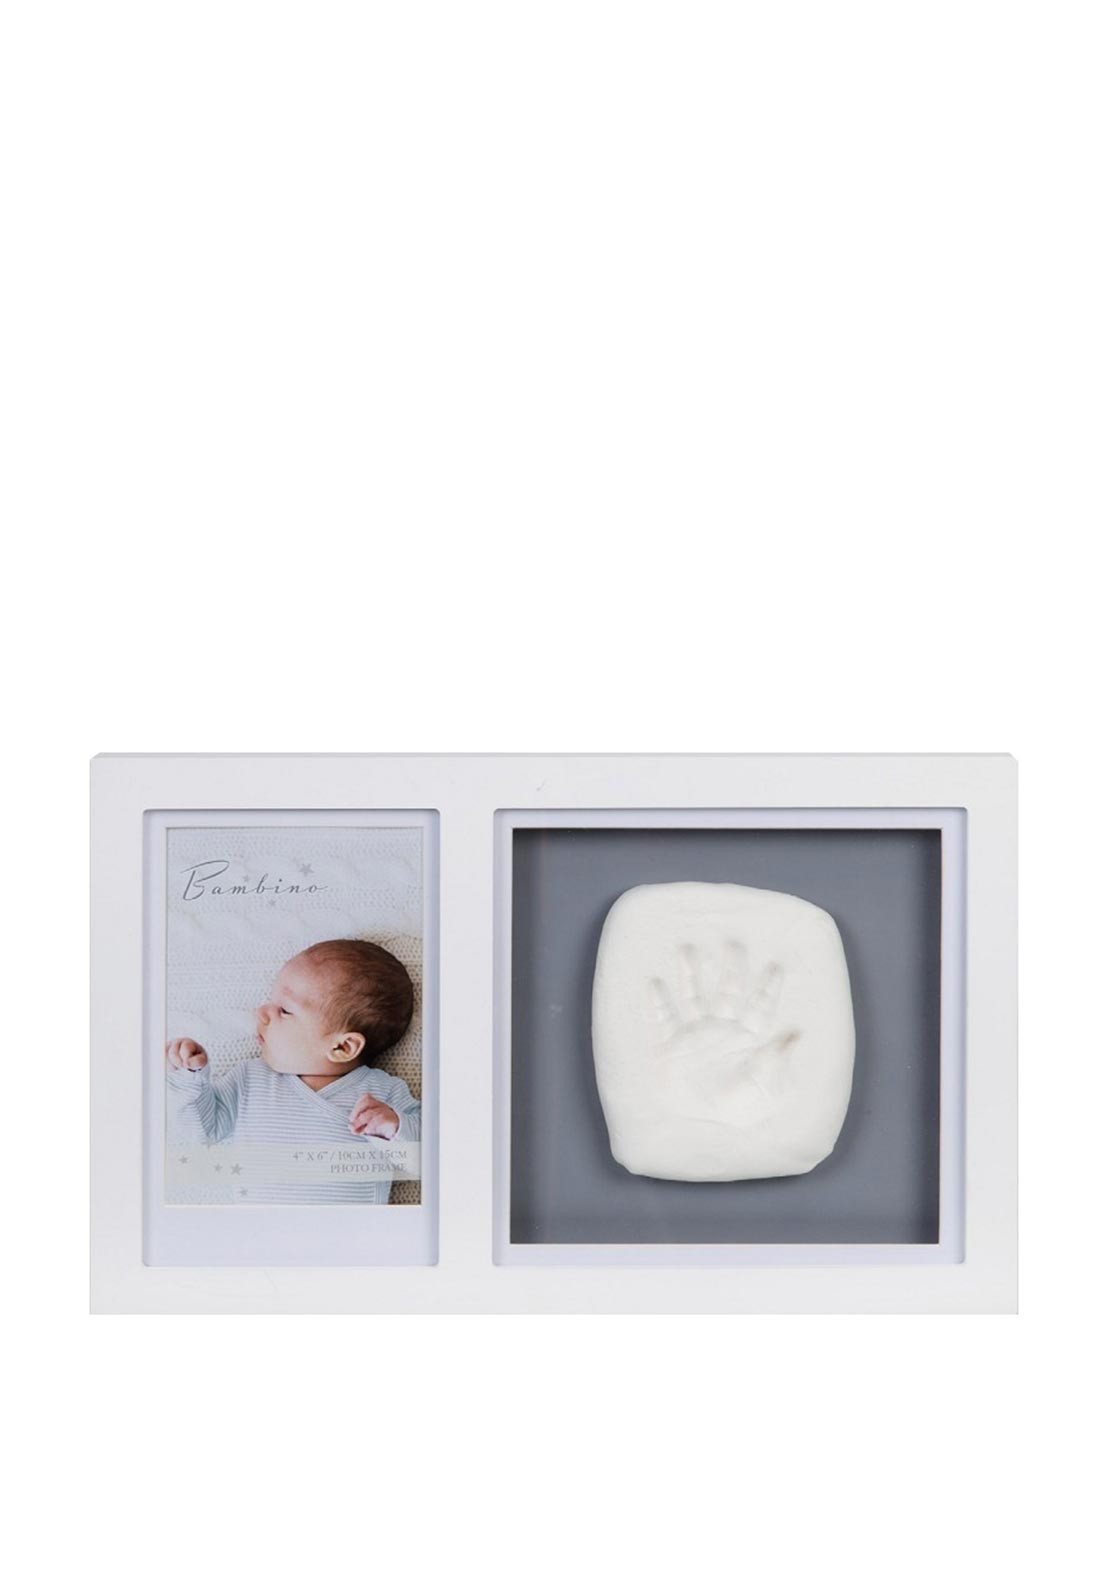 Bambino Hand and Foot Imprint Kit